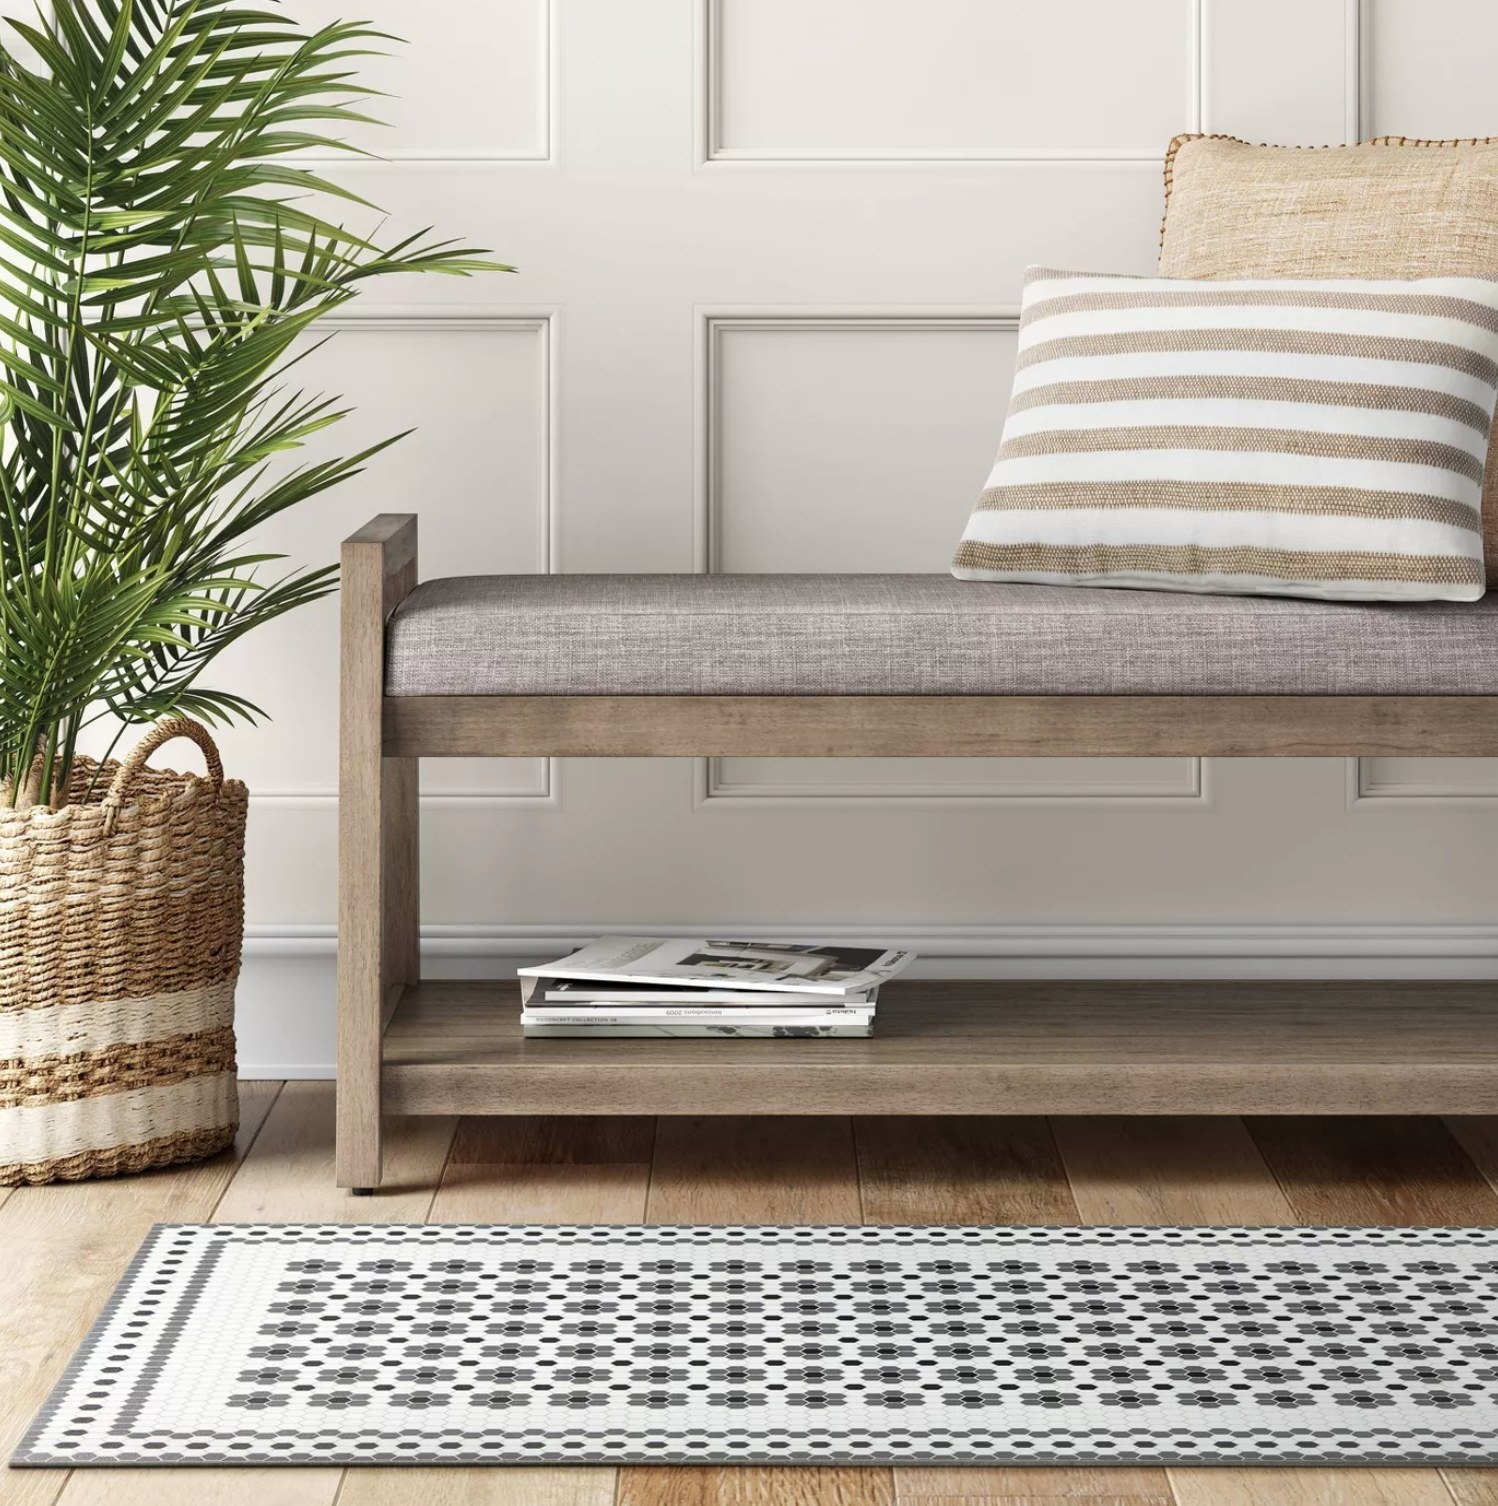 the gray and white tile mat on a wooden floor with a bench next to it with magazines on the bottom shelf and throw pillow on the bench top